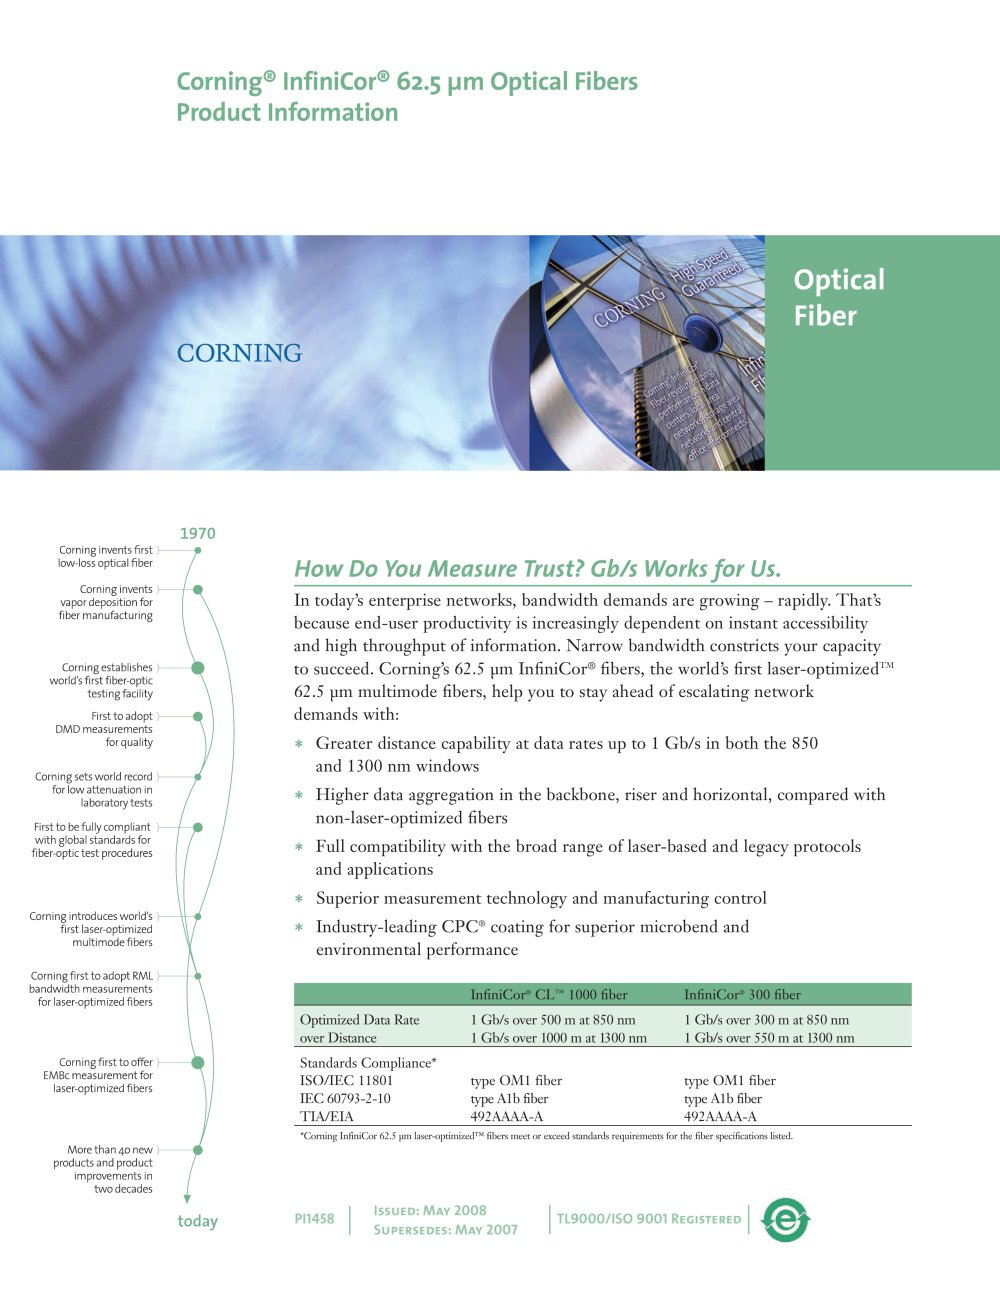 InfiniCor 62.5 µm Optical Fiber Product Information Sheet   1 / 4 Pages